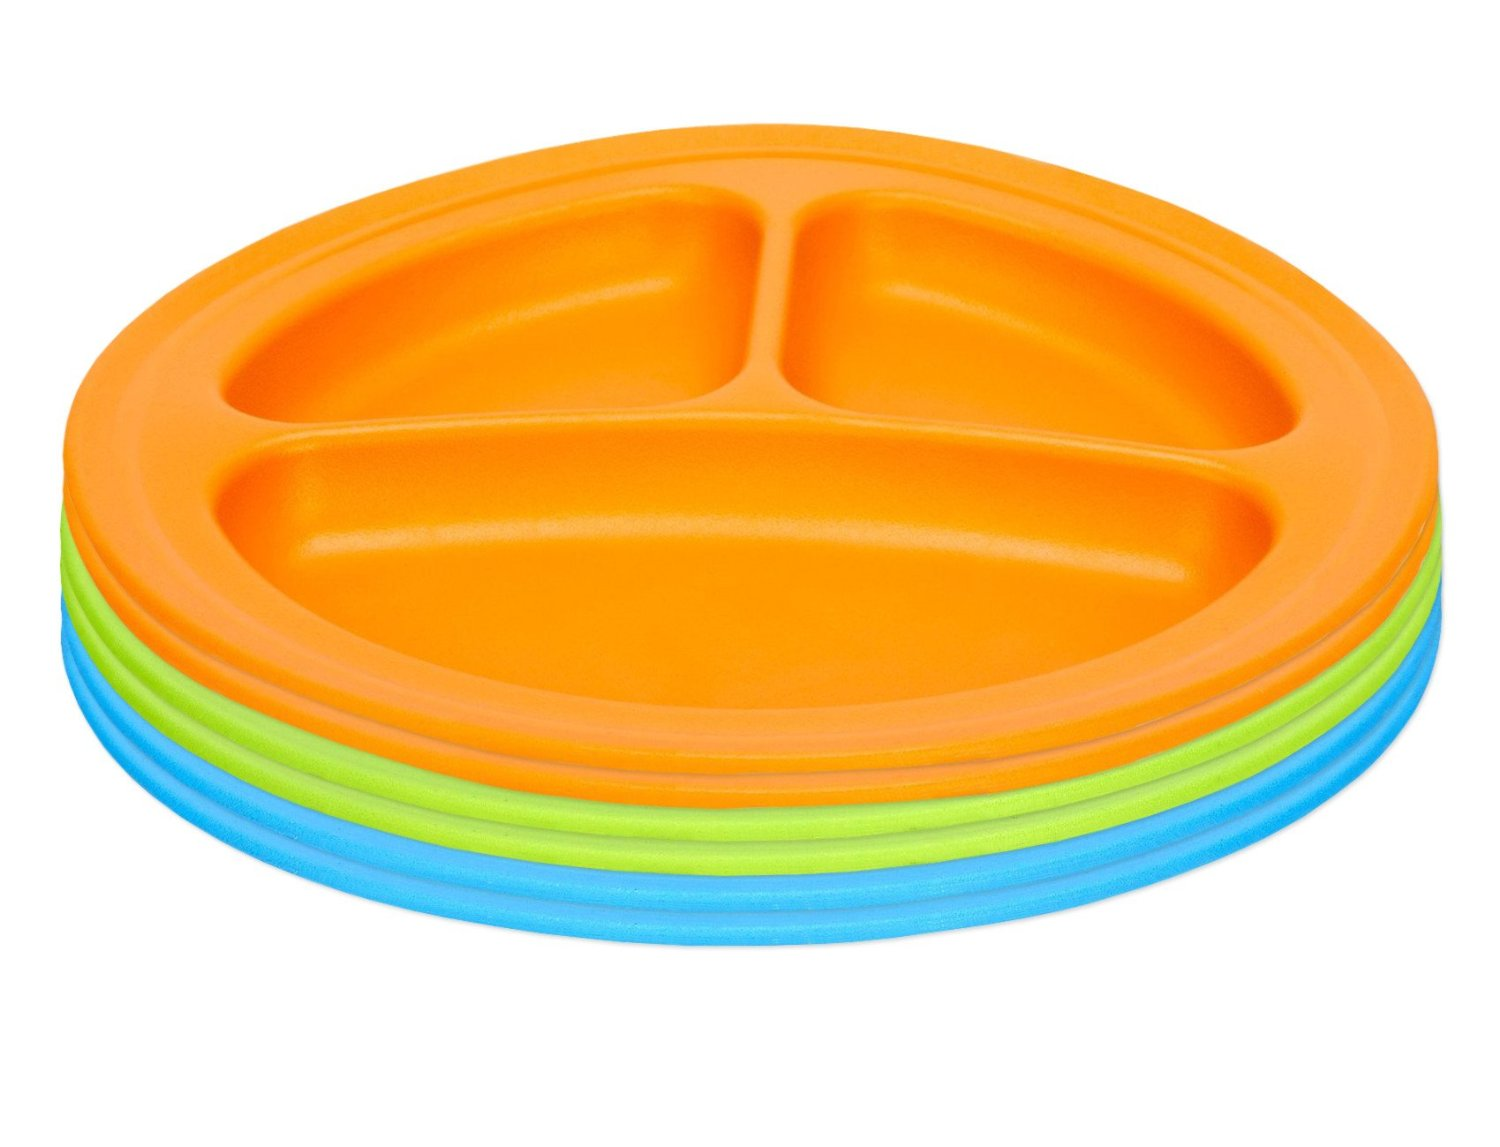 Green Eats Divided Feeding Plate, 6 Count, Blue Green Orange by Green Eats